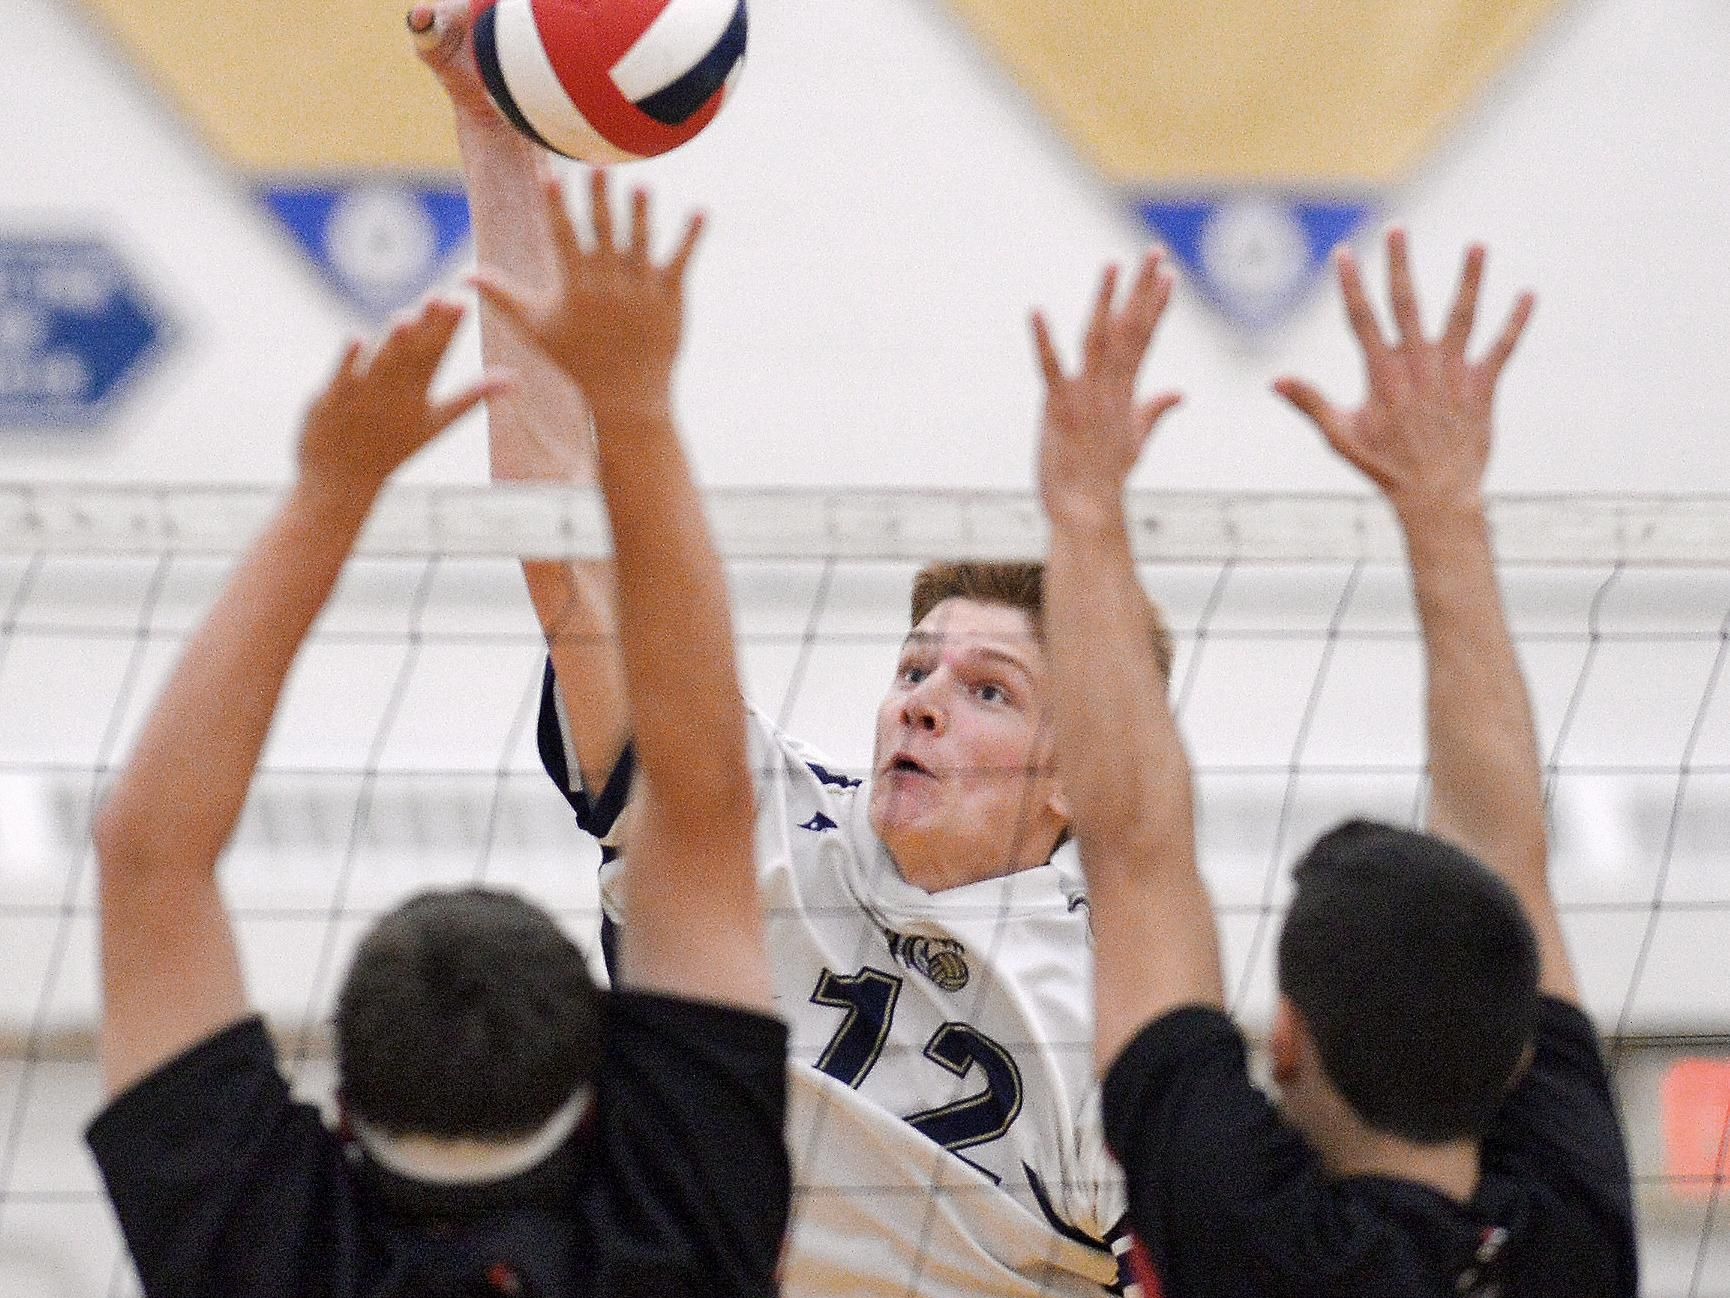 Webster's Justin Spiegel hits over the block of Hilton's Joe Hoover and Bryce Thompson.